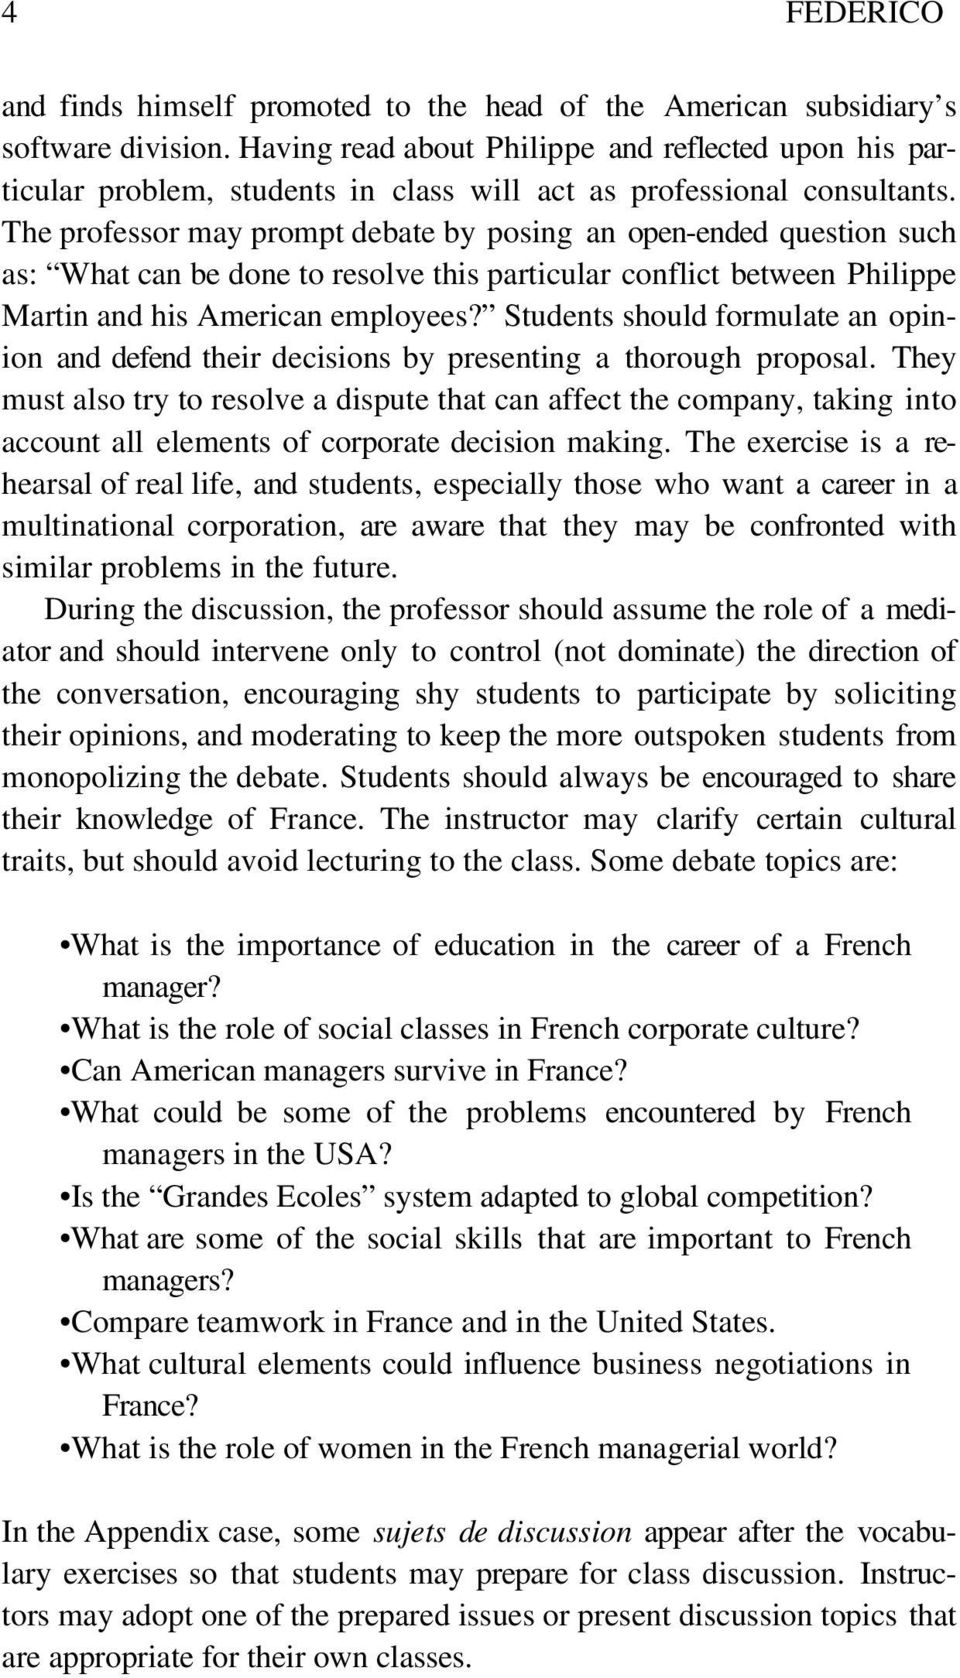 The professor may prompt debate by posing an open-ended question such as: What can be done to resolve this particular conflict between Philippe Martin and his American employees?